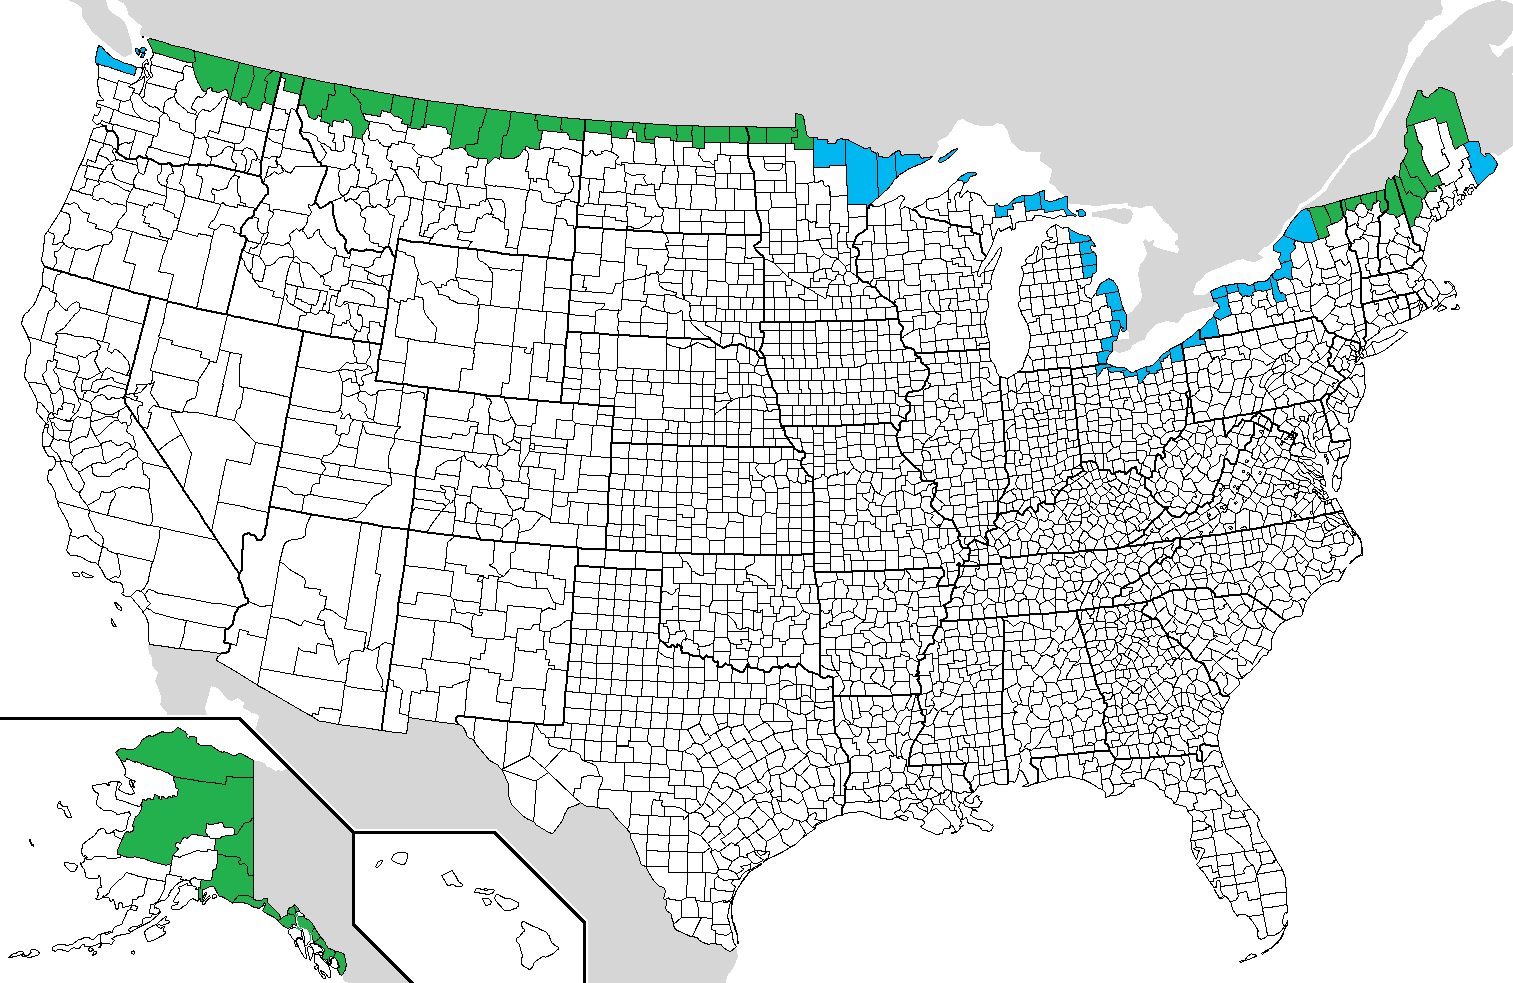 FileUSCanada border countiespng Wikimedia Commons